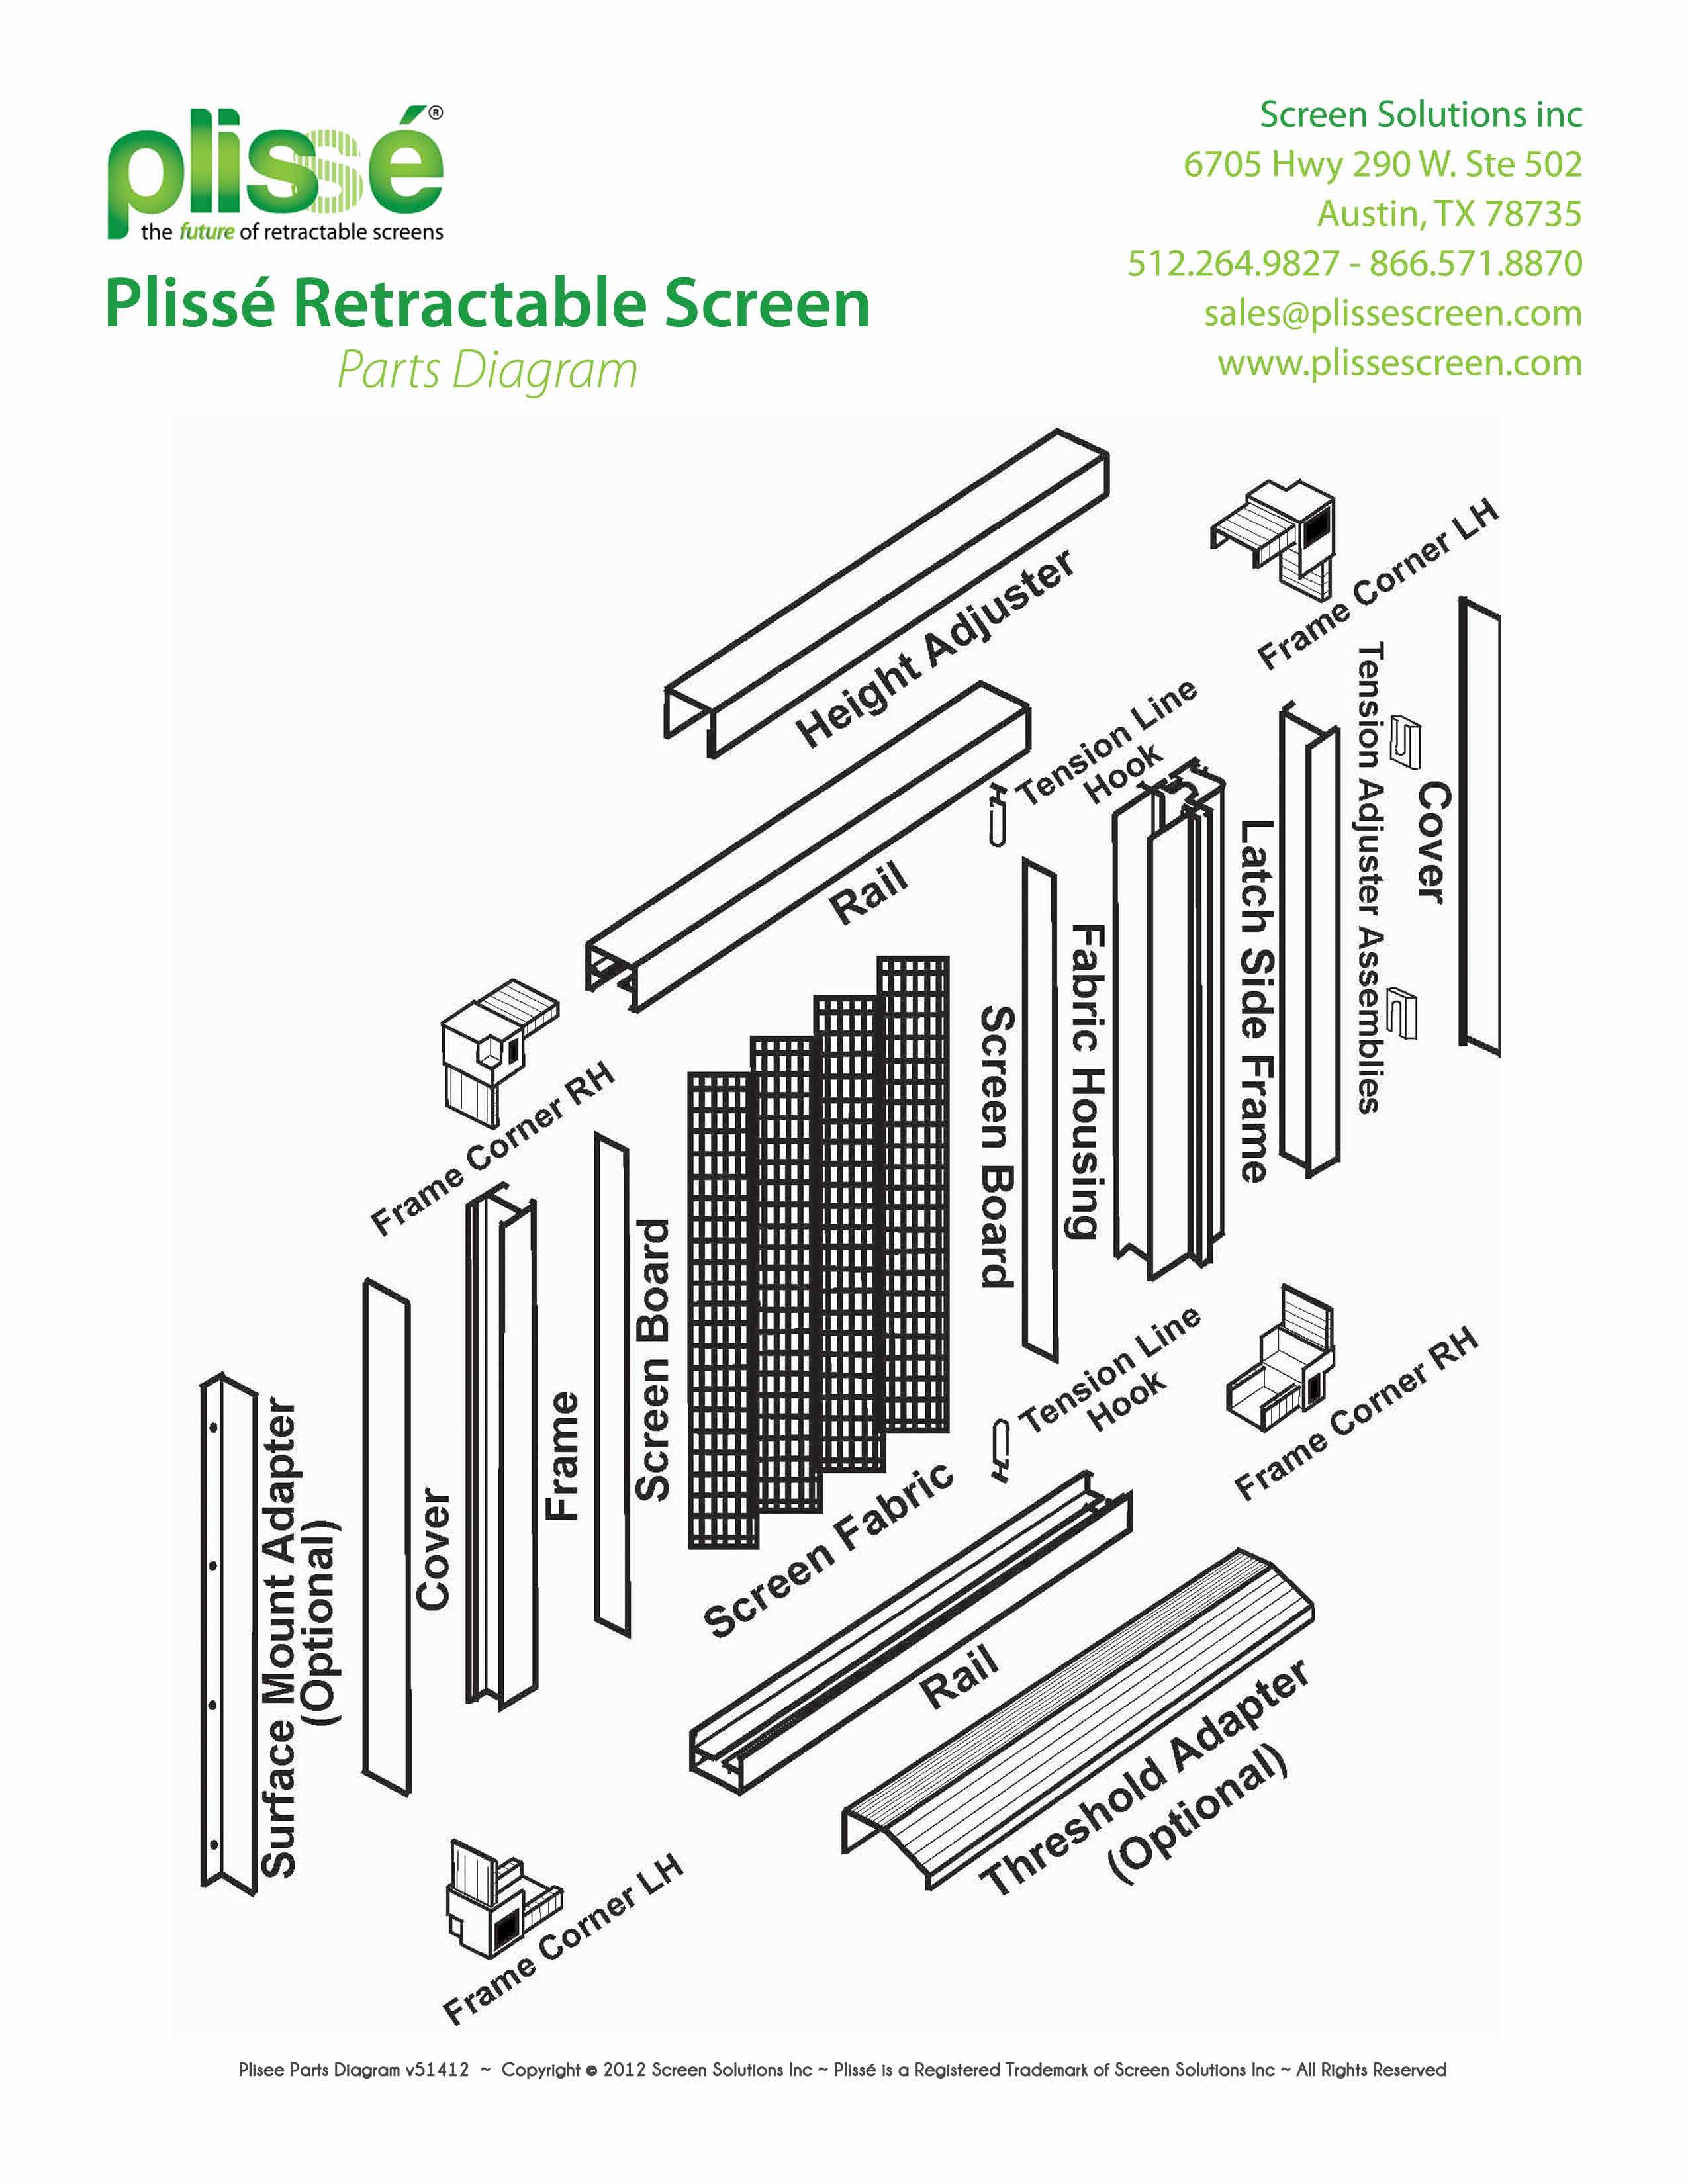 Larson storm door parts diagram images for Screen door parts